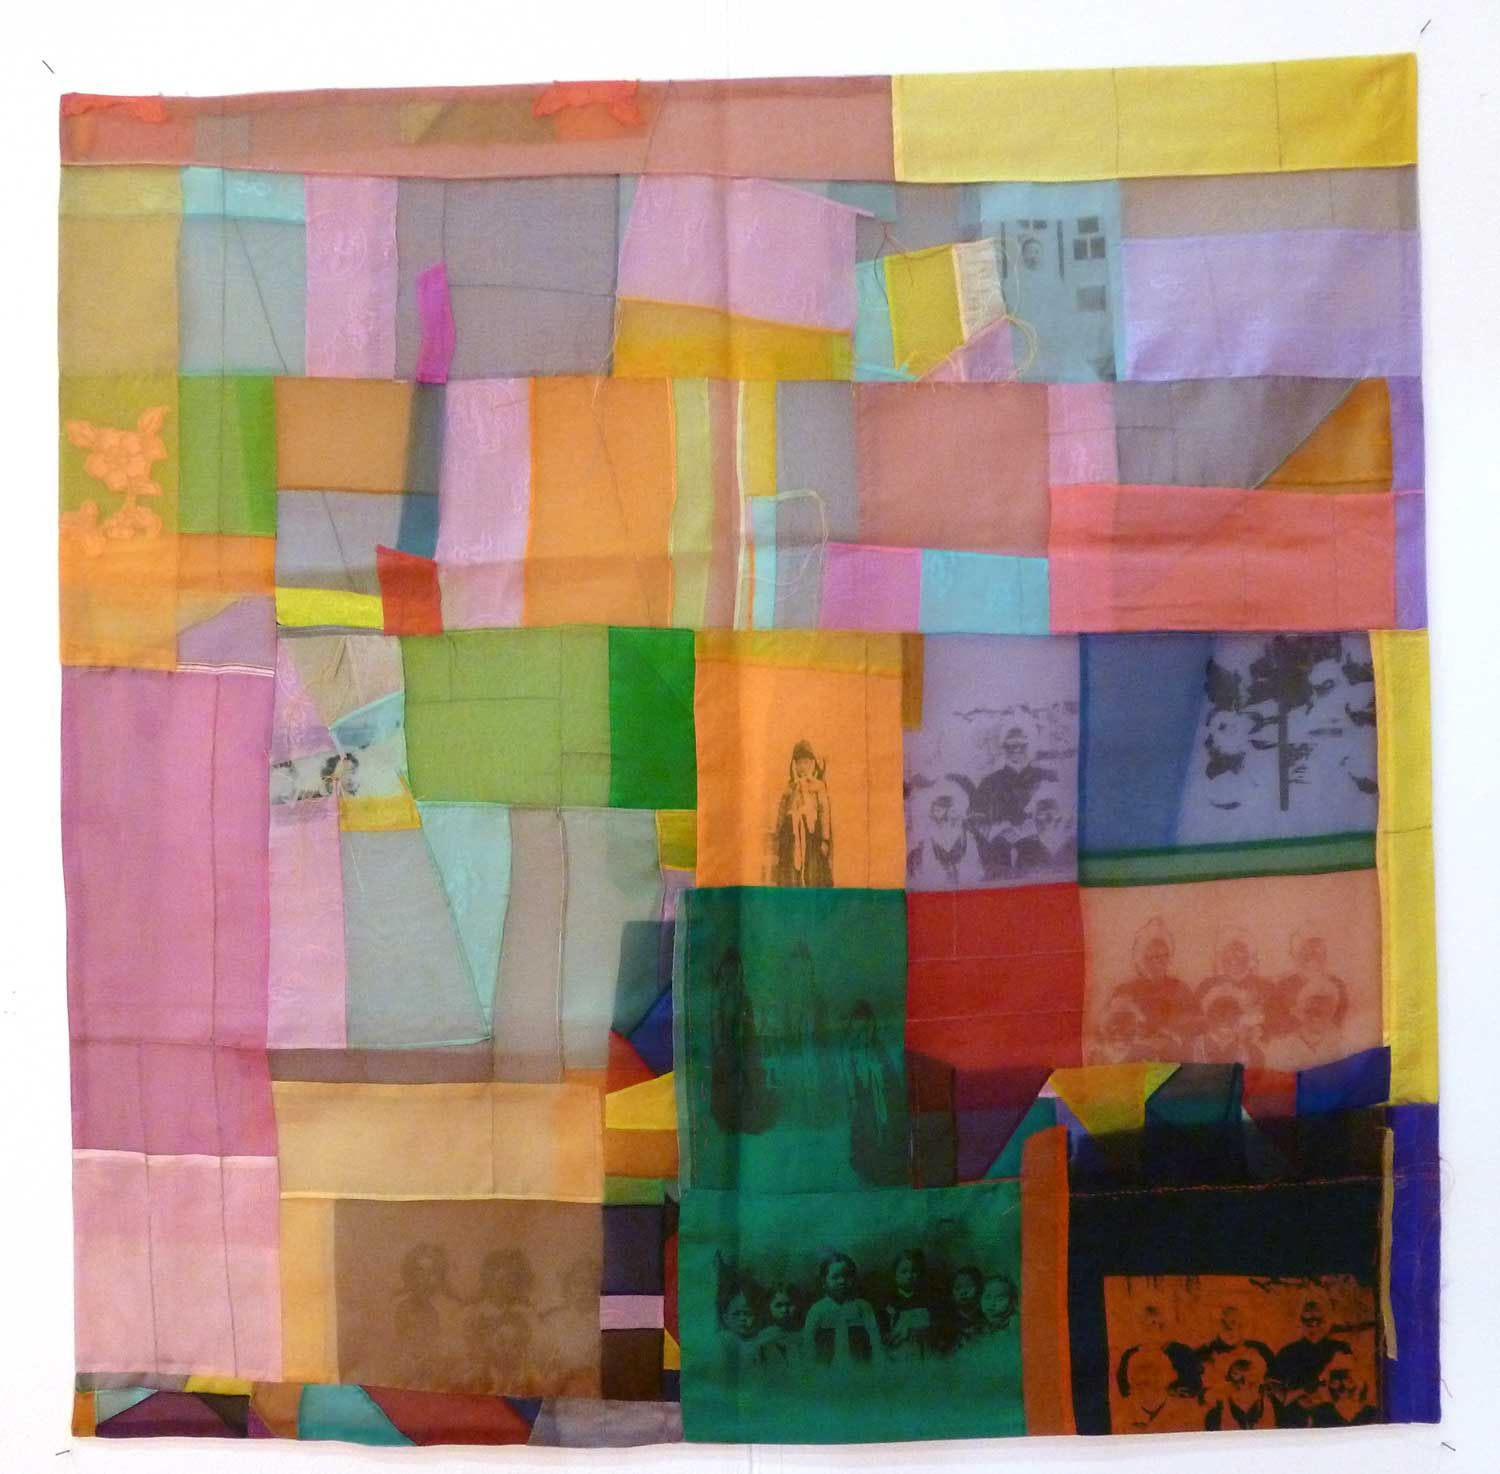 Burnt Offerings: Textiles, textiles everywhere ...